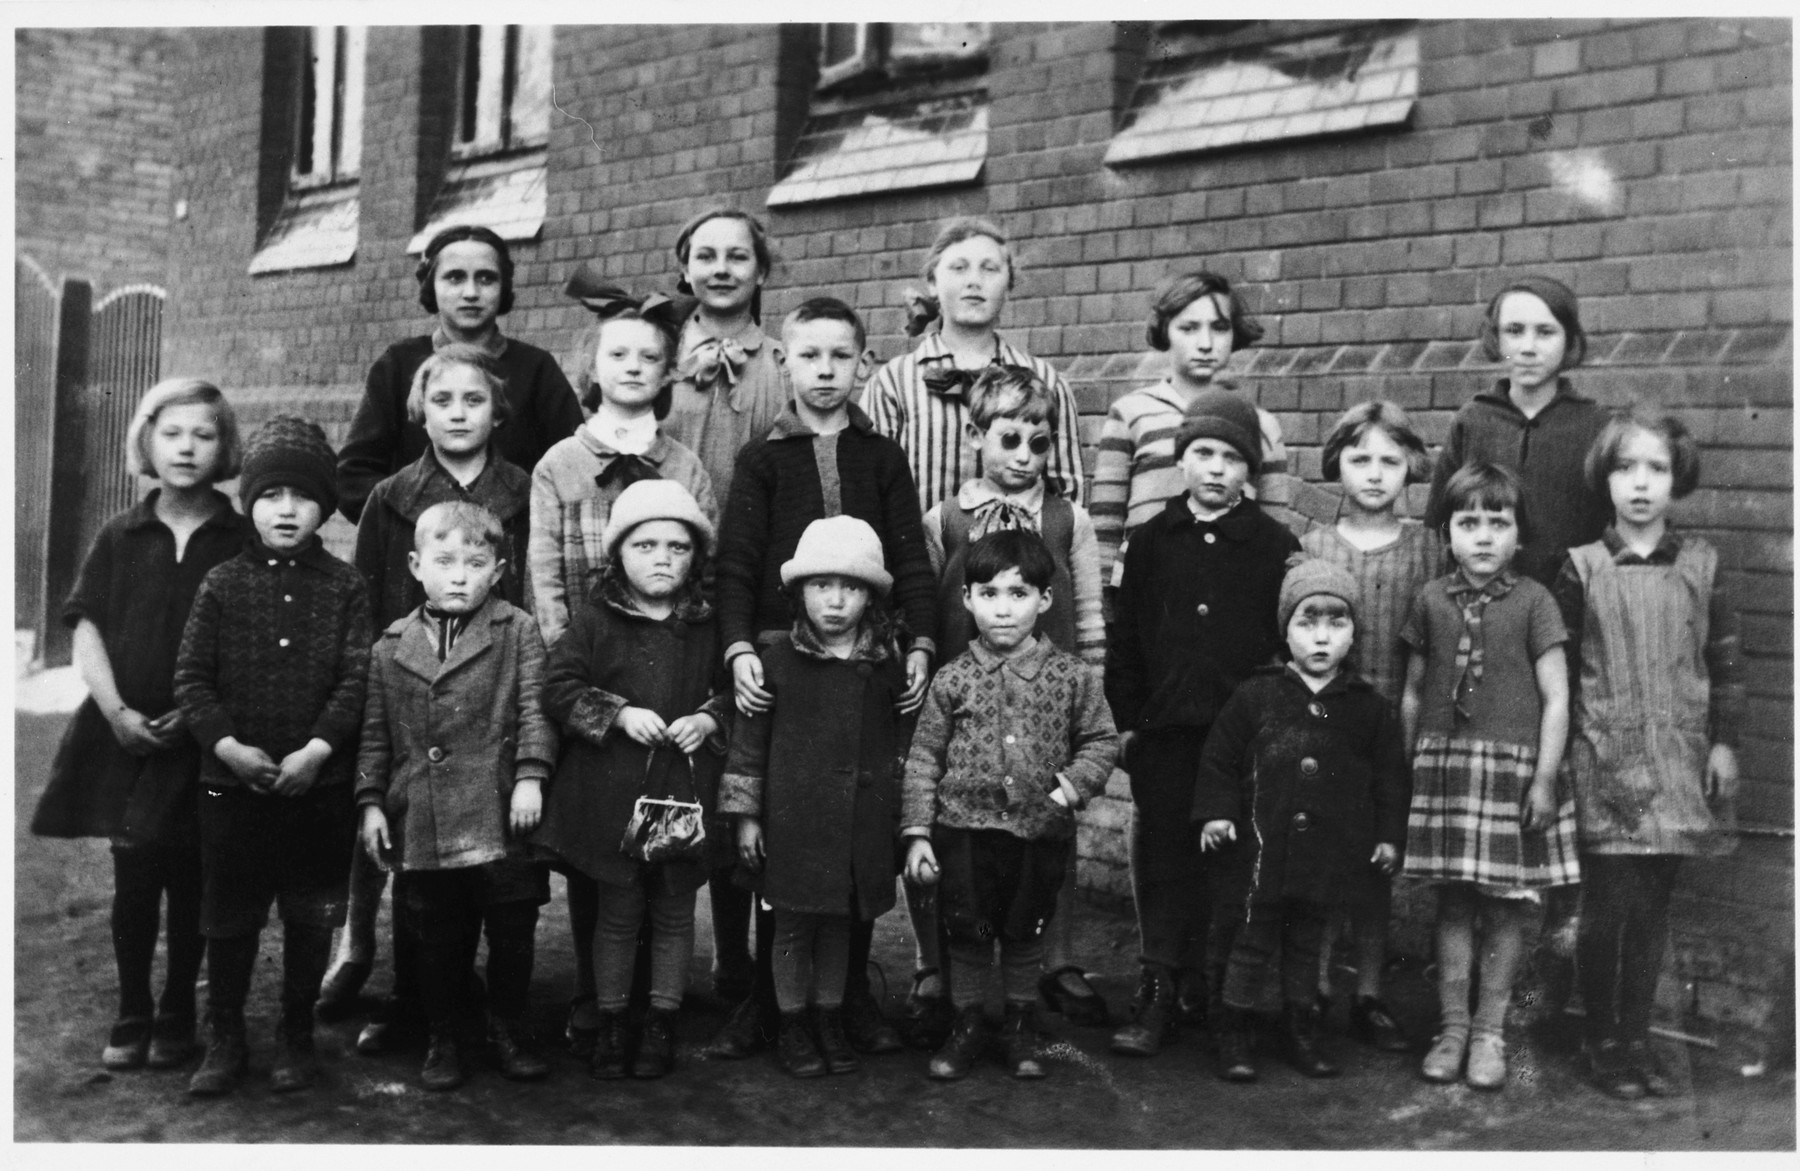 Group portrait of children in Peine, Germany.  Among those pictured is Solly Perel (front row, center).